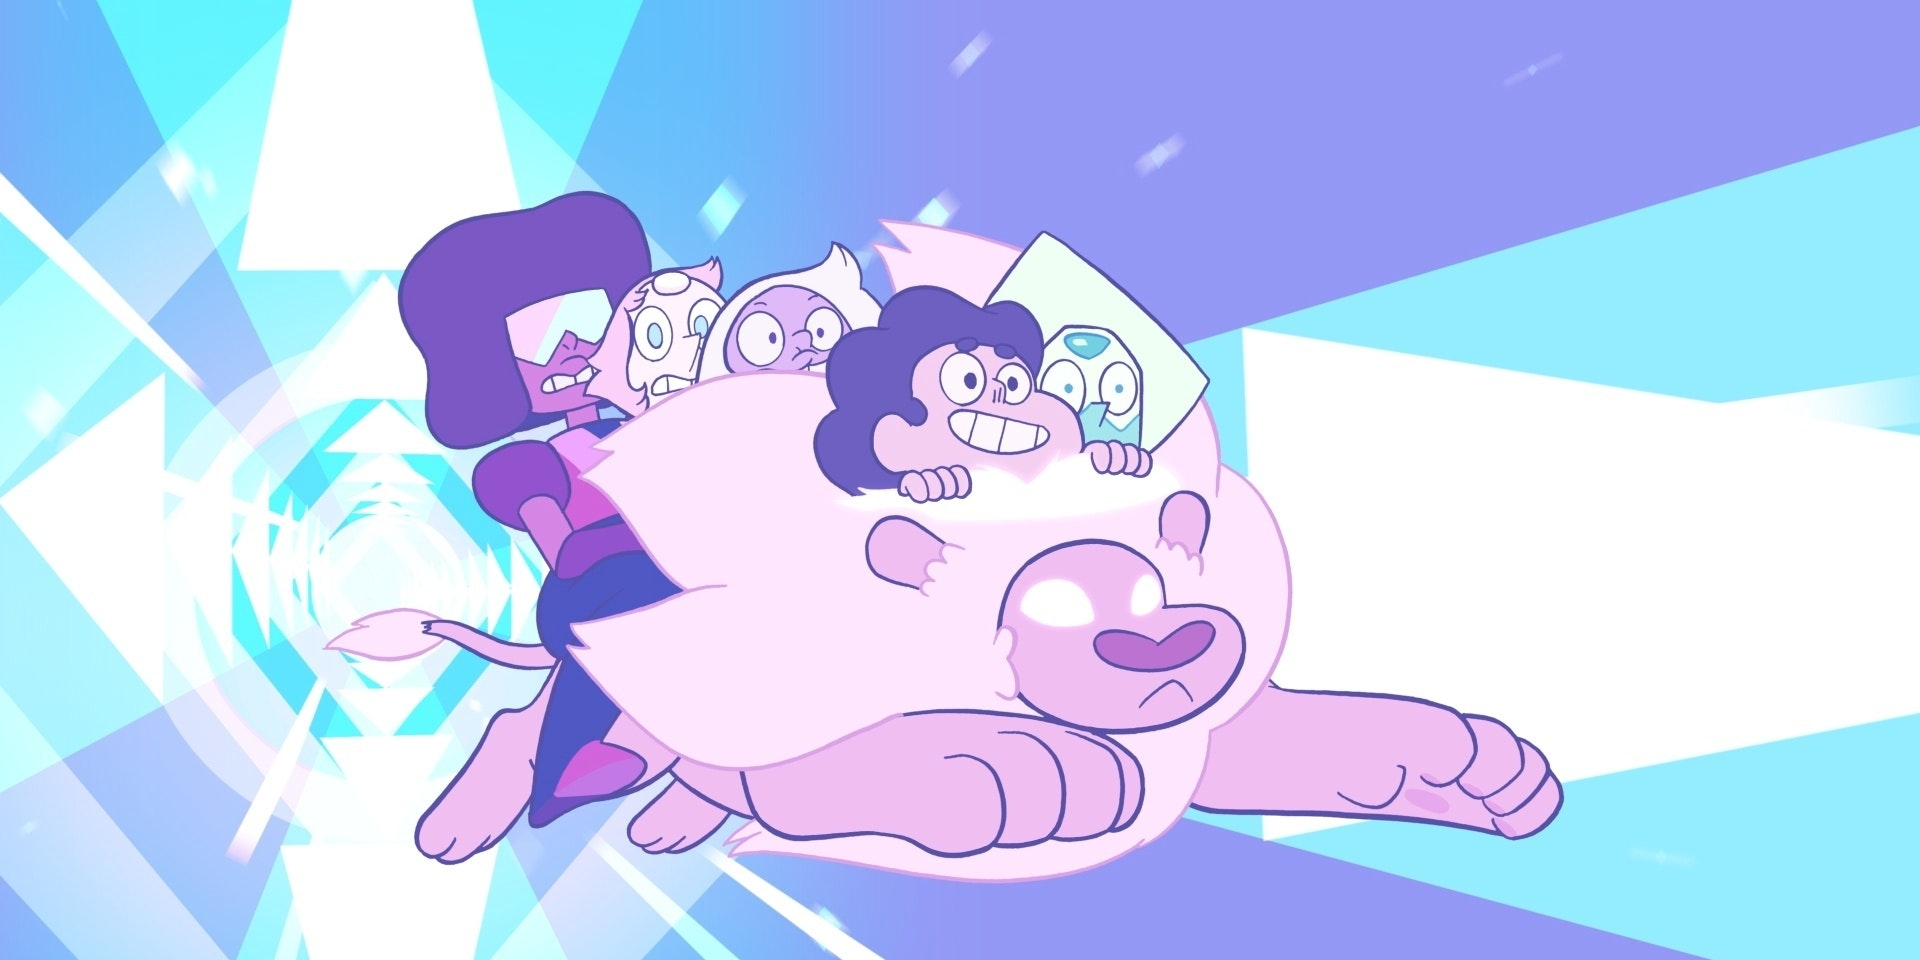 What to Expect from the Next Seasons of 'Steven Universe'